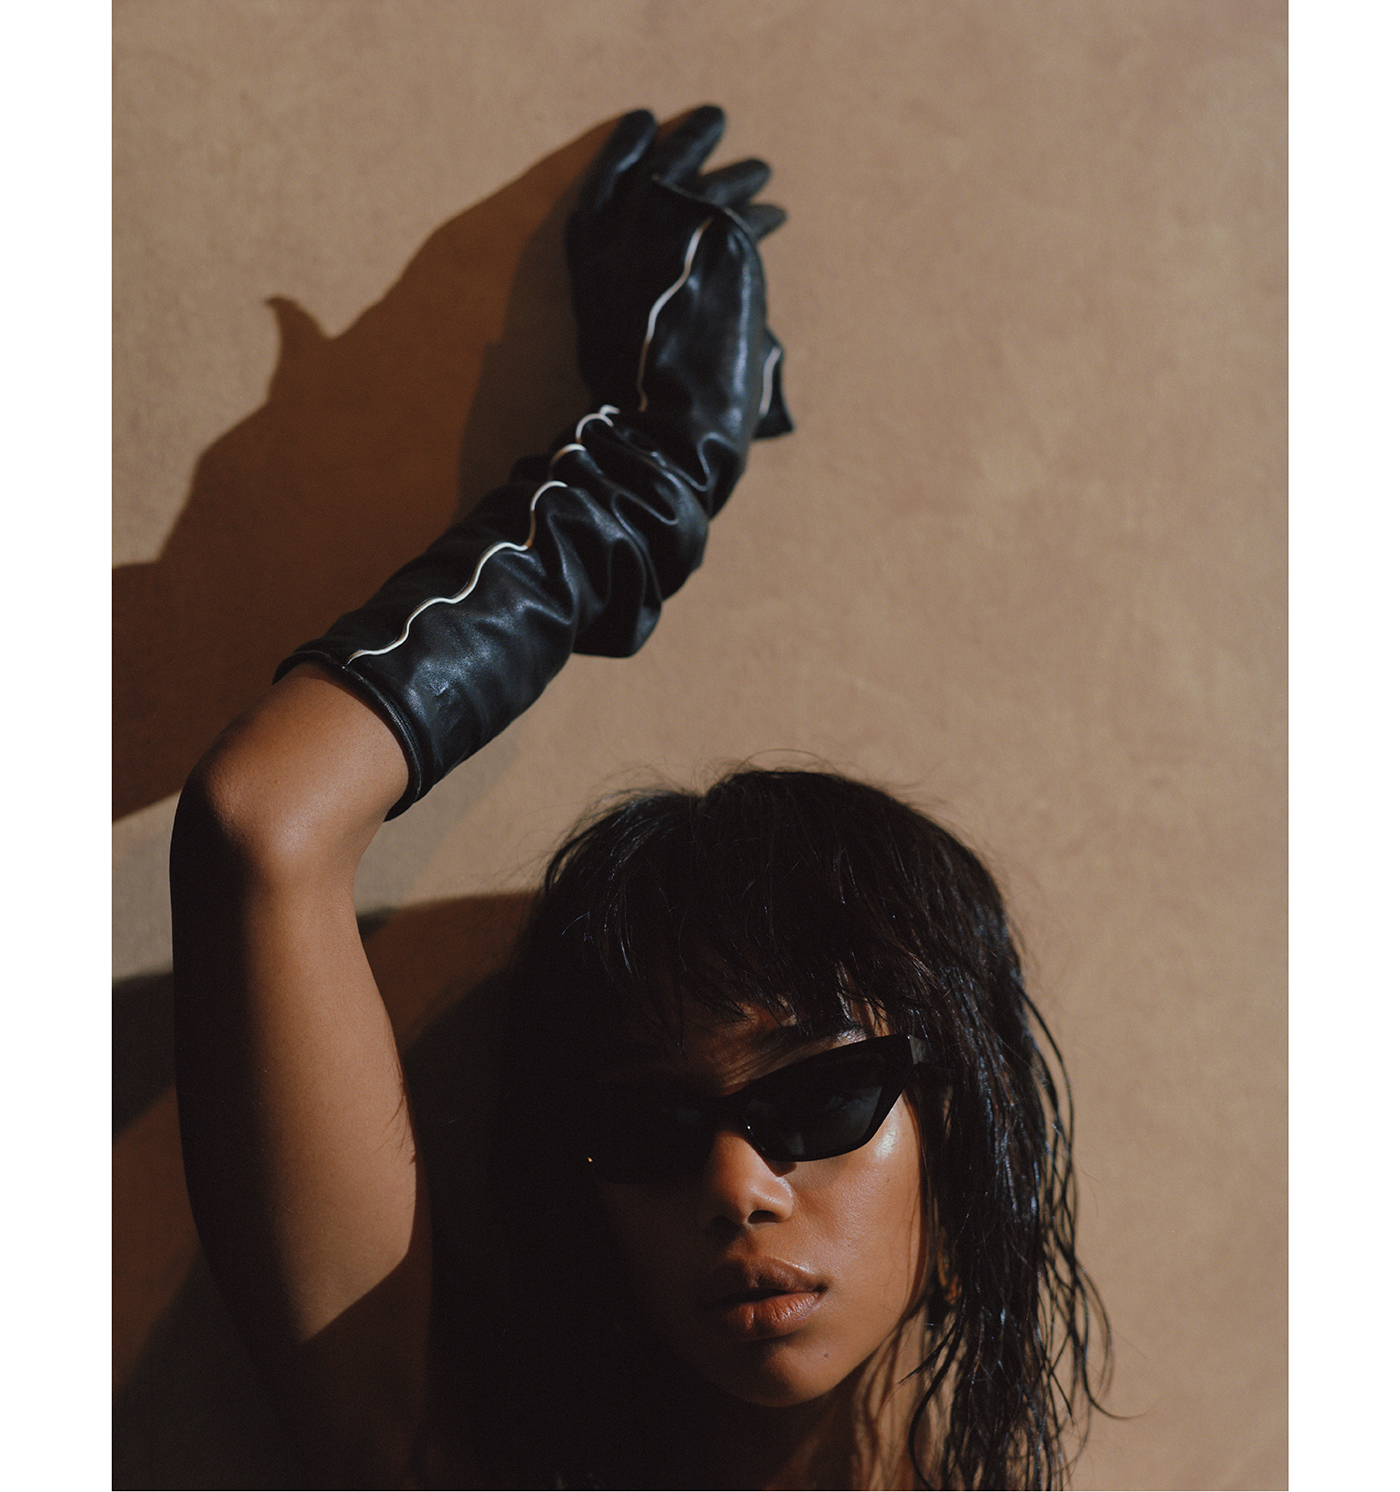 Sunglasses by Alain Mikli. Glove by Louis Vuitton.